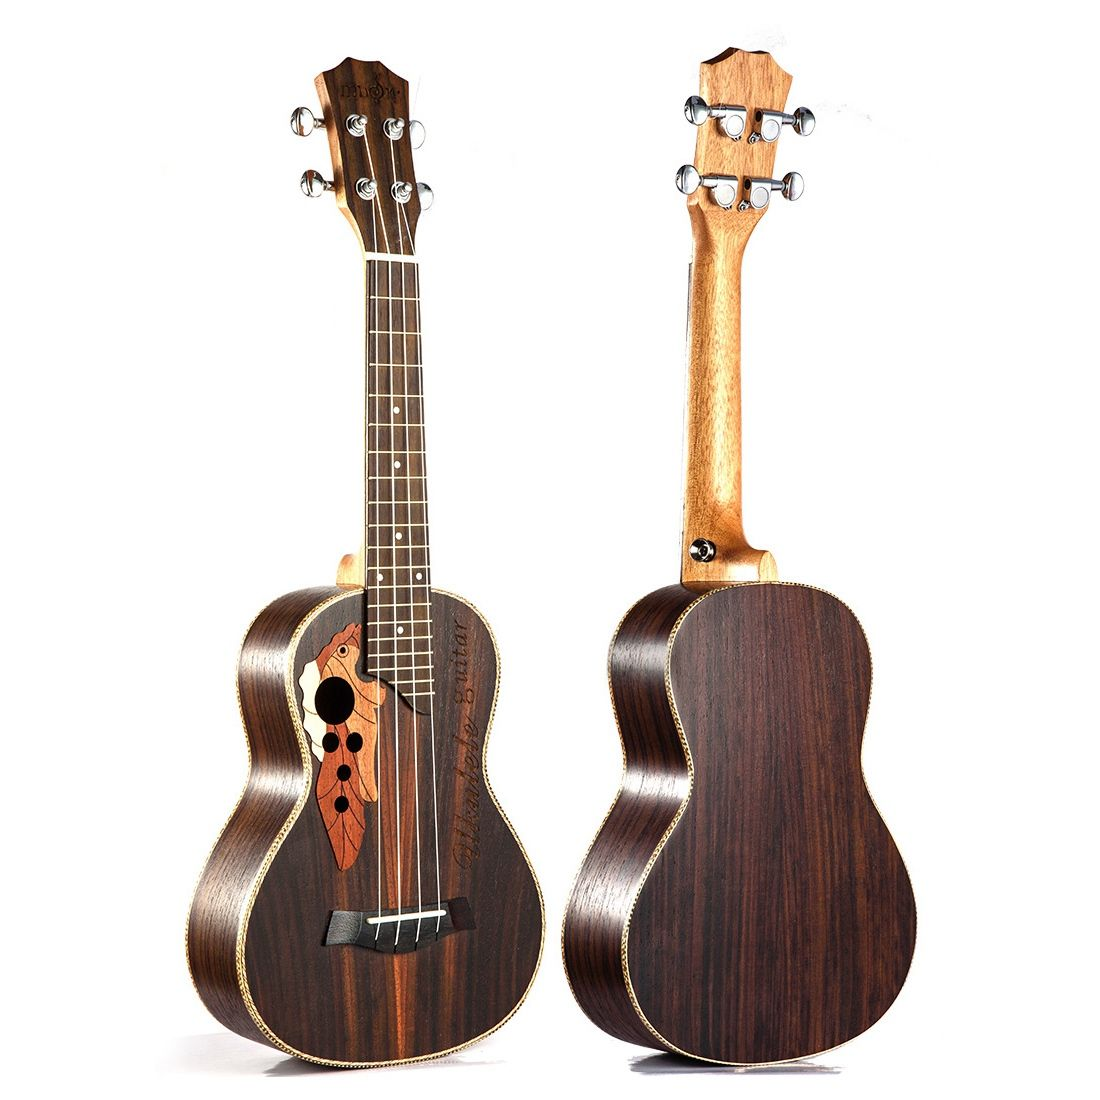 Ukulele 23 Acoustic Ukulele 4 Strings Guitar Musical Stringed Instrument Different Types Guitarra guitar Musical Instruments кроссовки asics кроссовки patriot 8